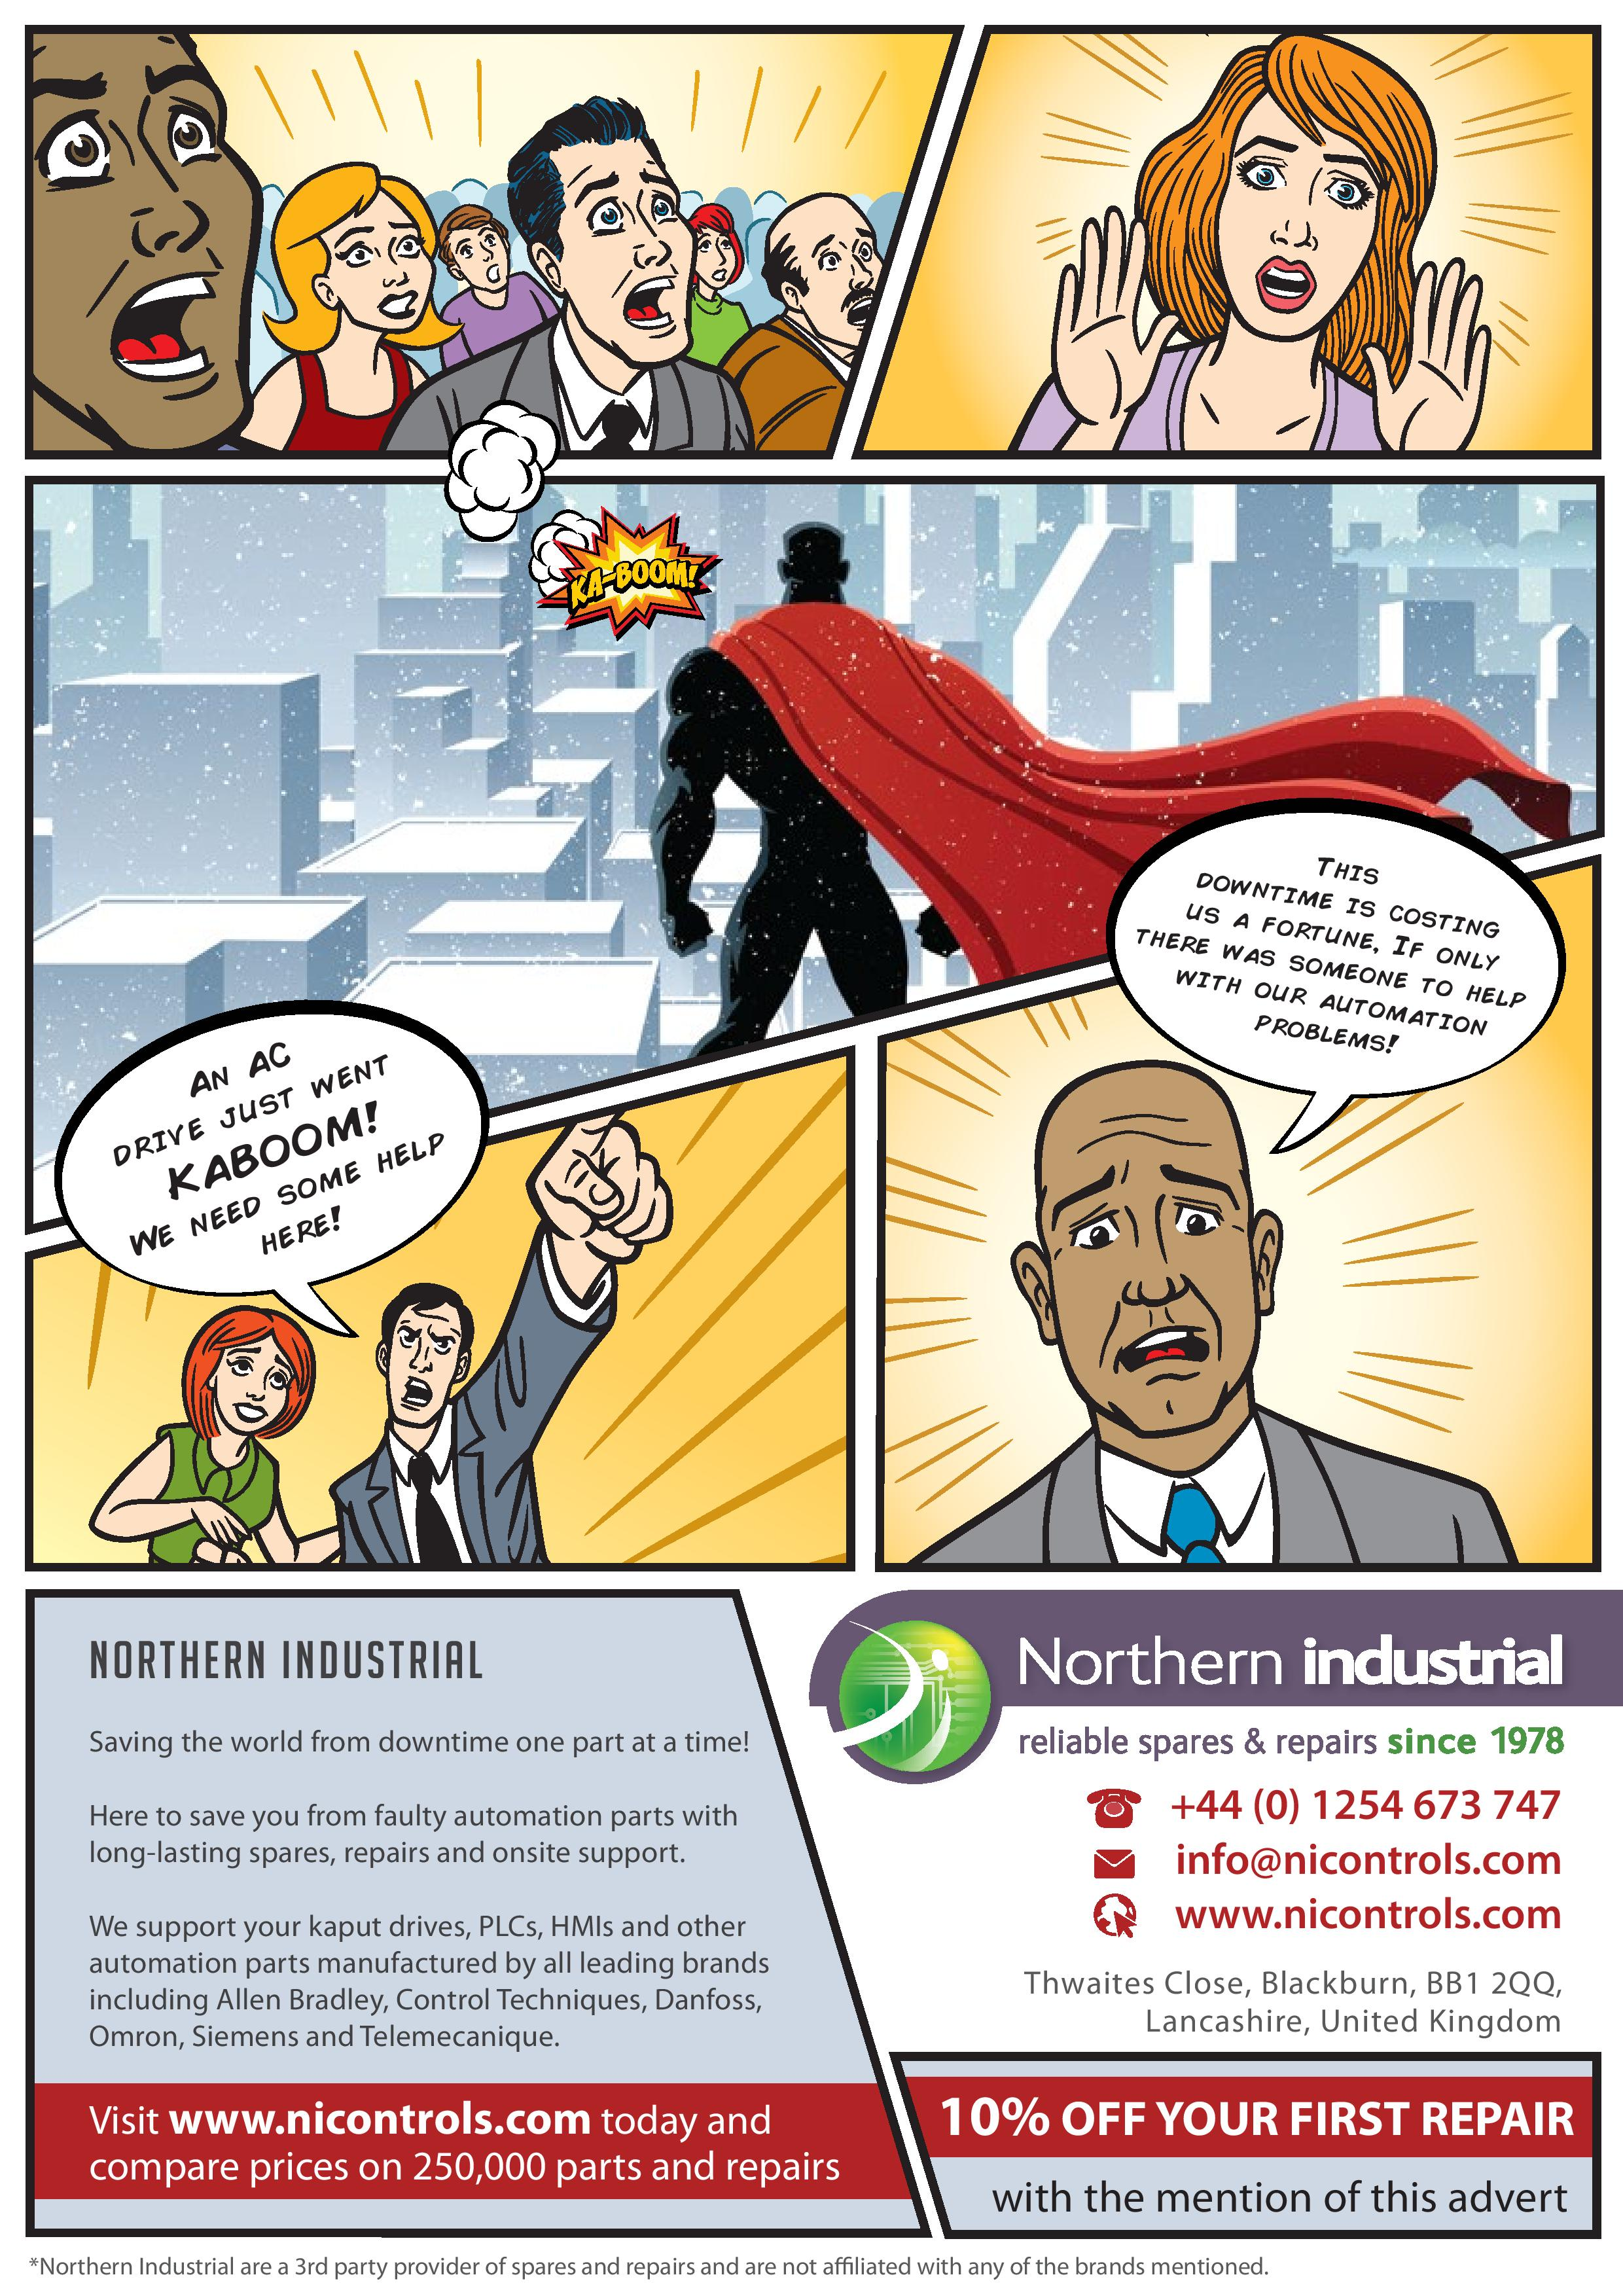 Northern Industrial advert - saving the world from downtime